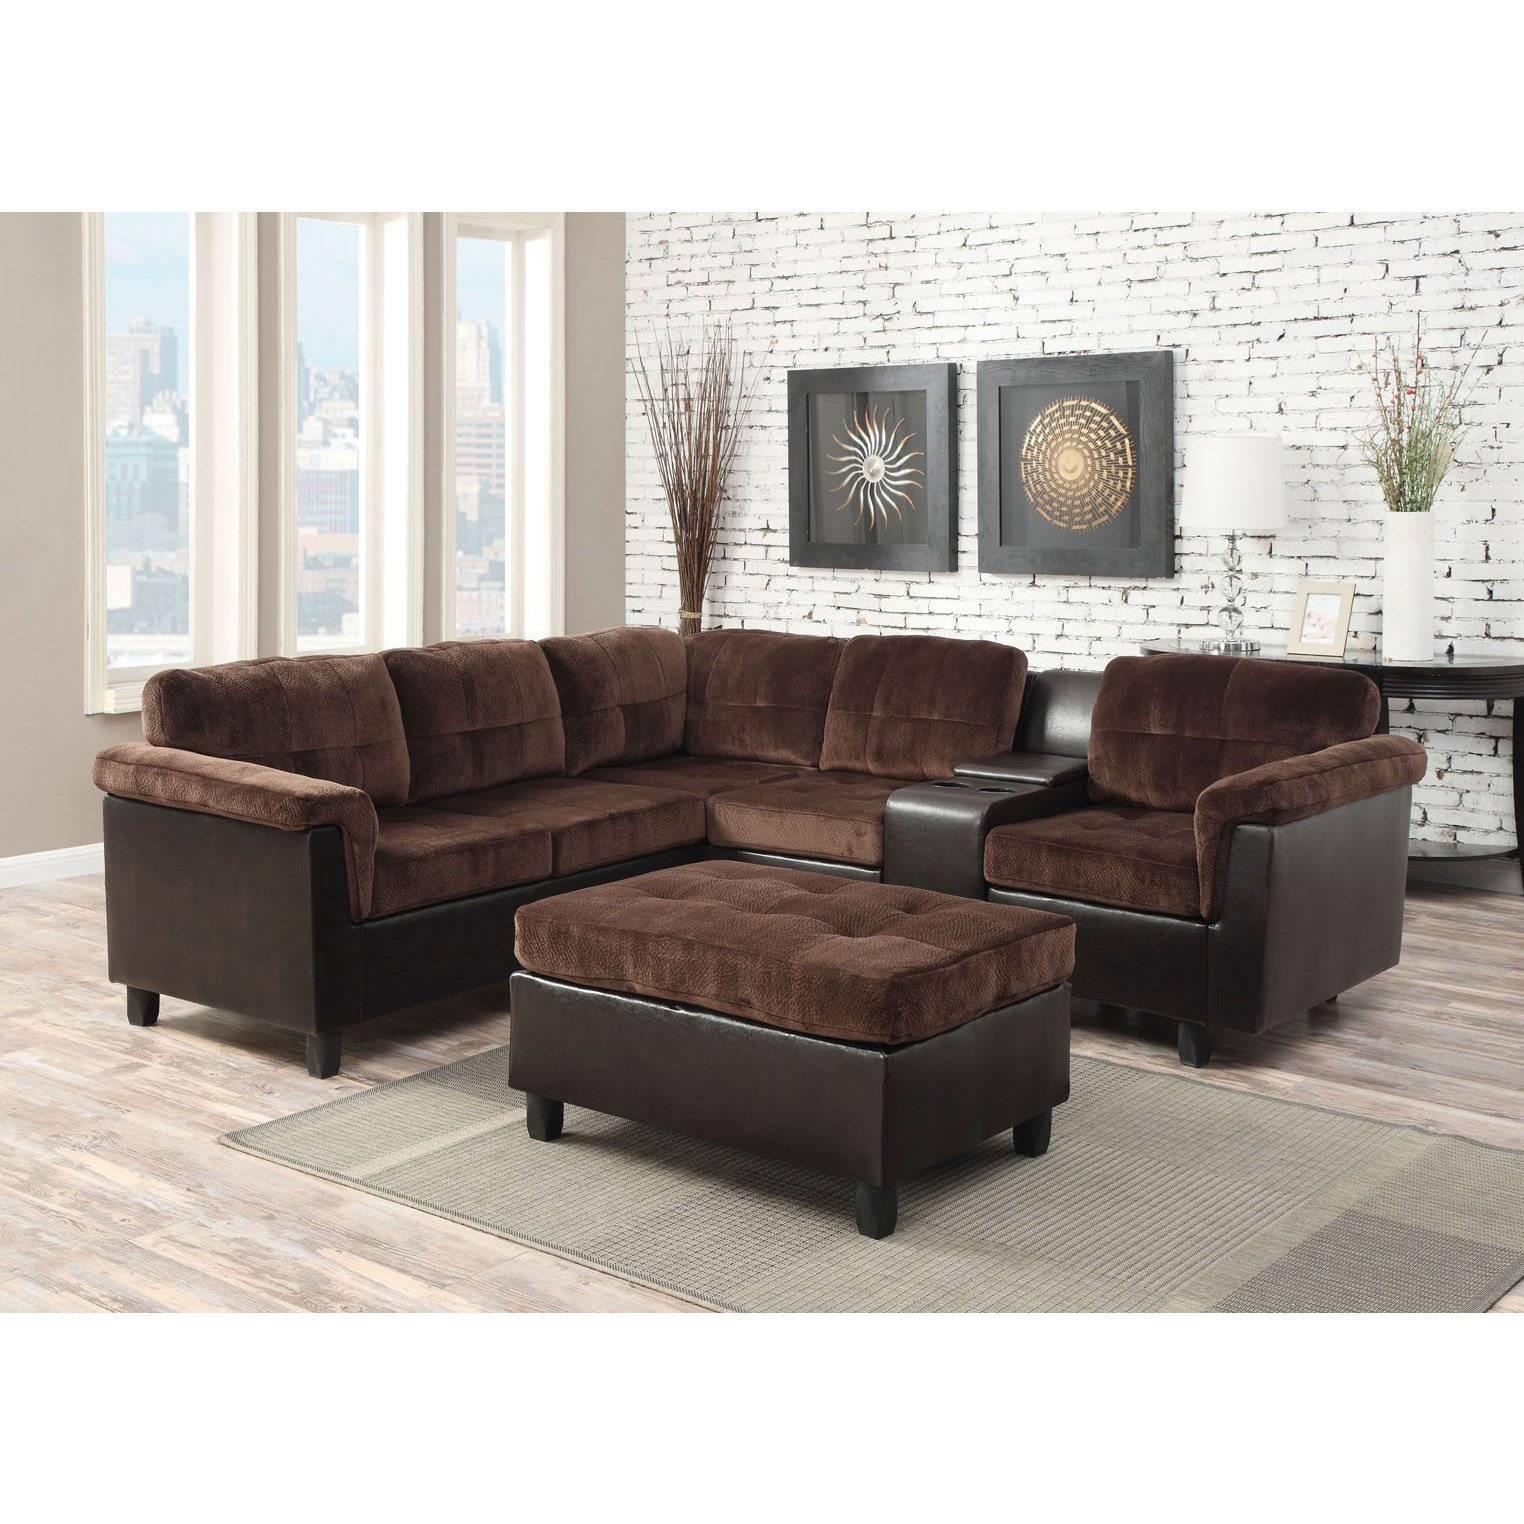 Shop Cleavon Reversible Sectional Sofa In Chocolate Champion – Free With Regard To Mansfield Cocoa Leather Sofa Chairs (Image 18 of 20)